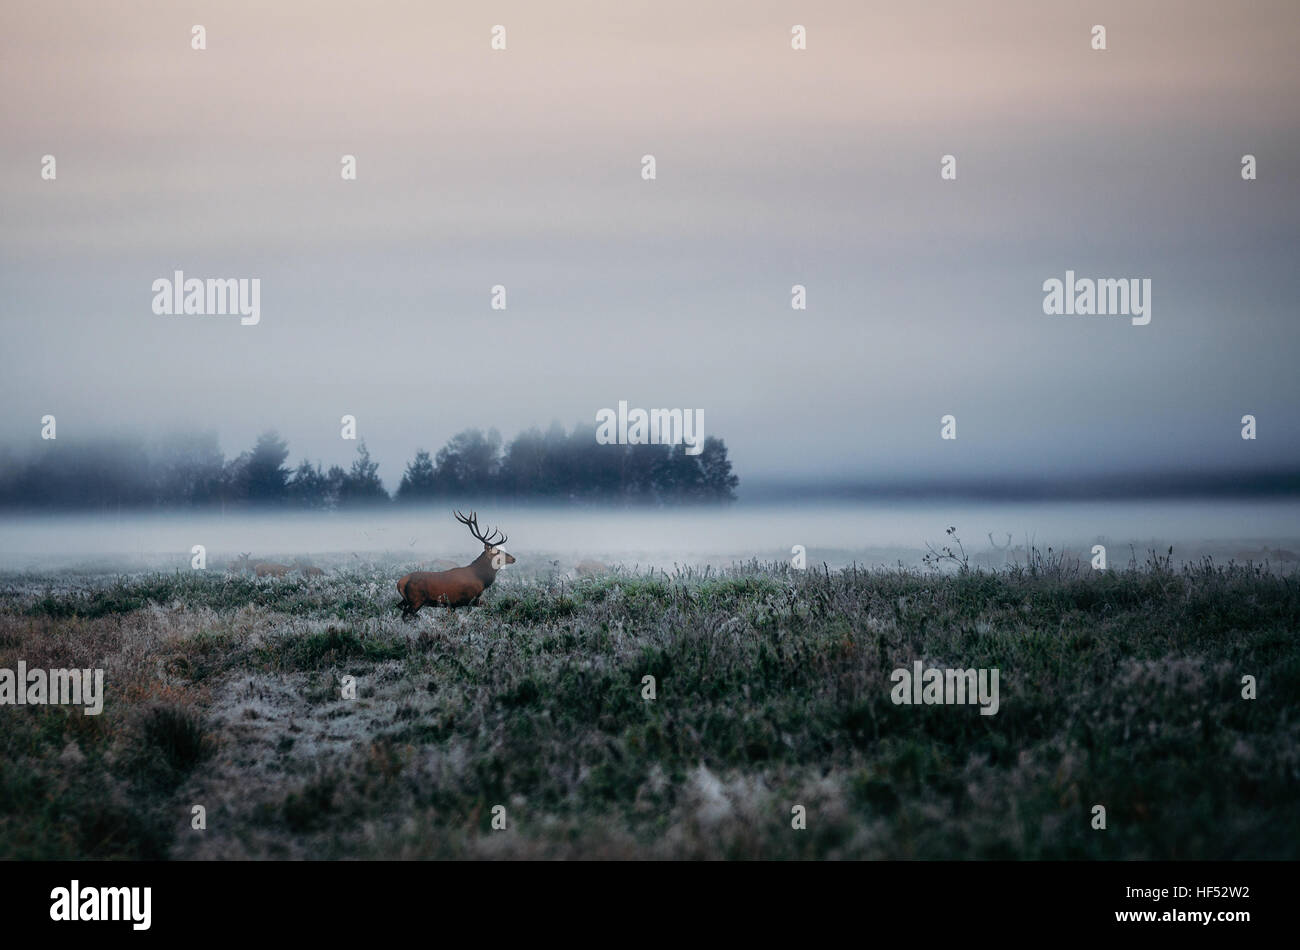 Beautiful red deer stag on the field near the foggy misty forest landscape in autumn in Belarus. - Stock Image